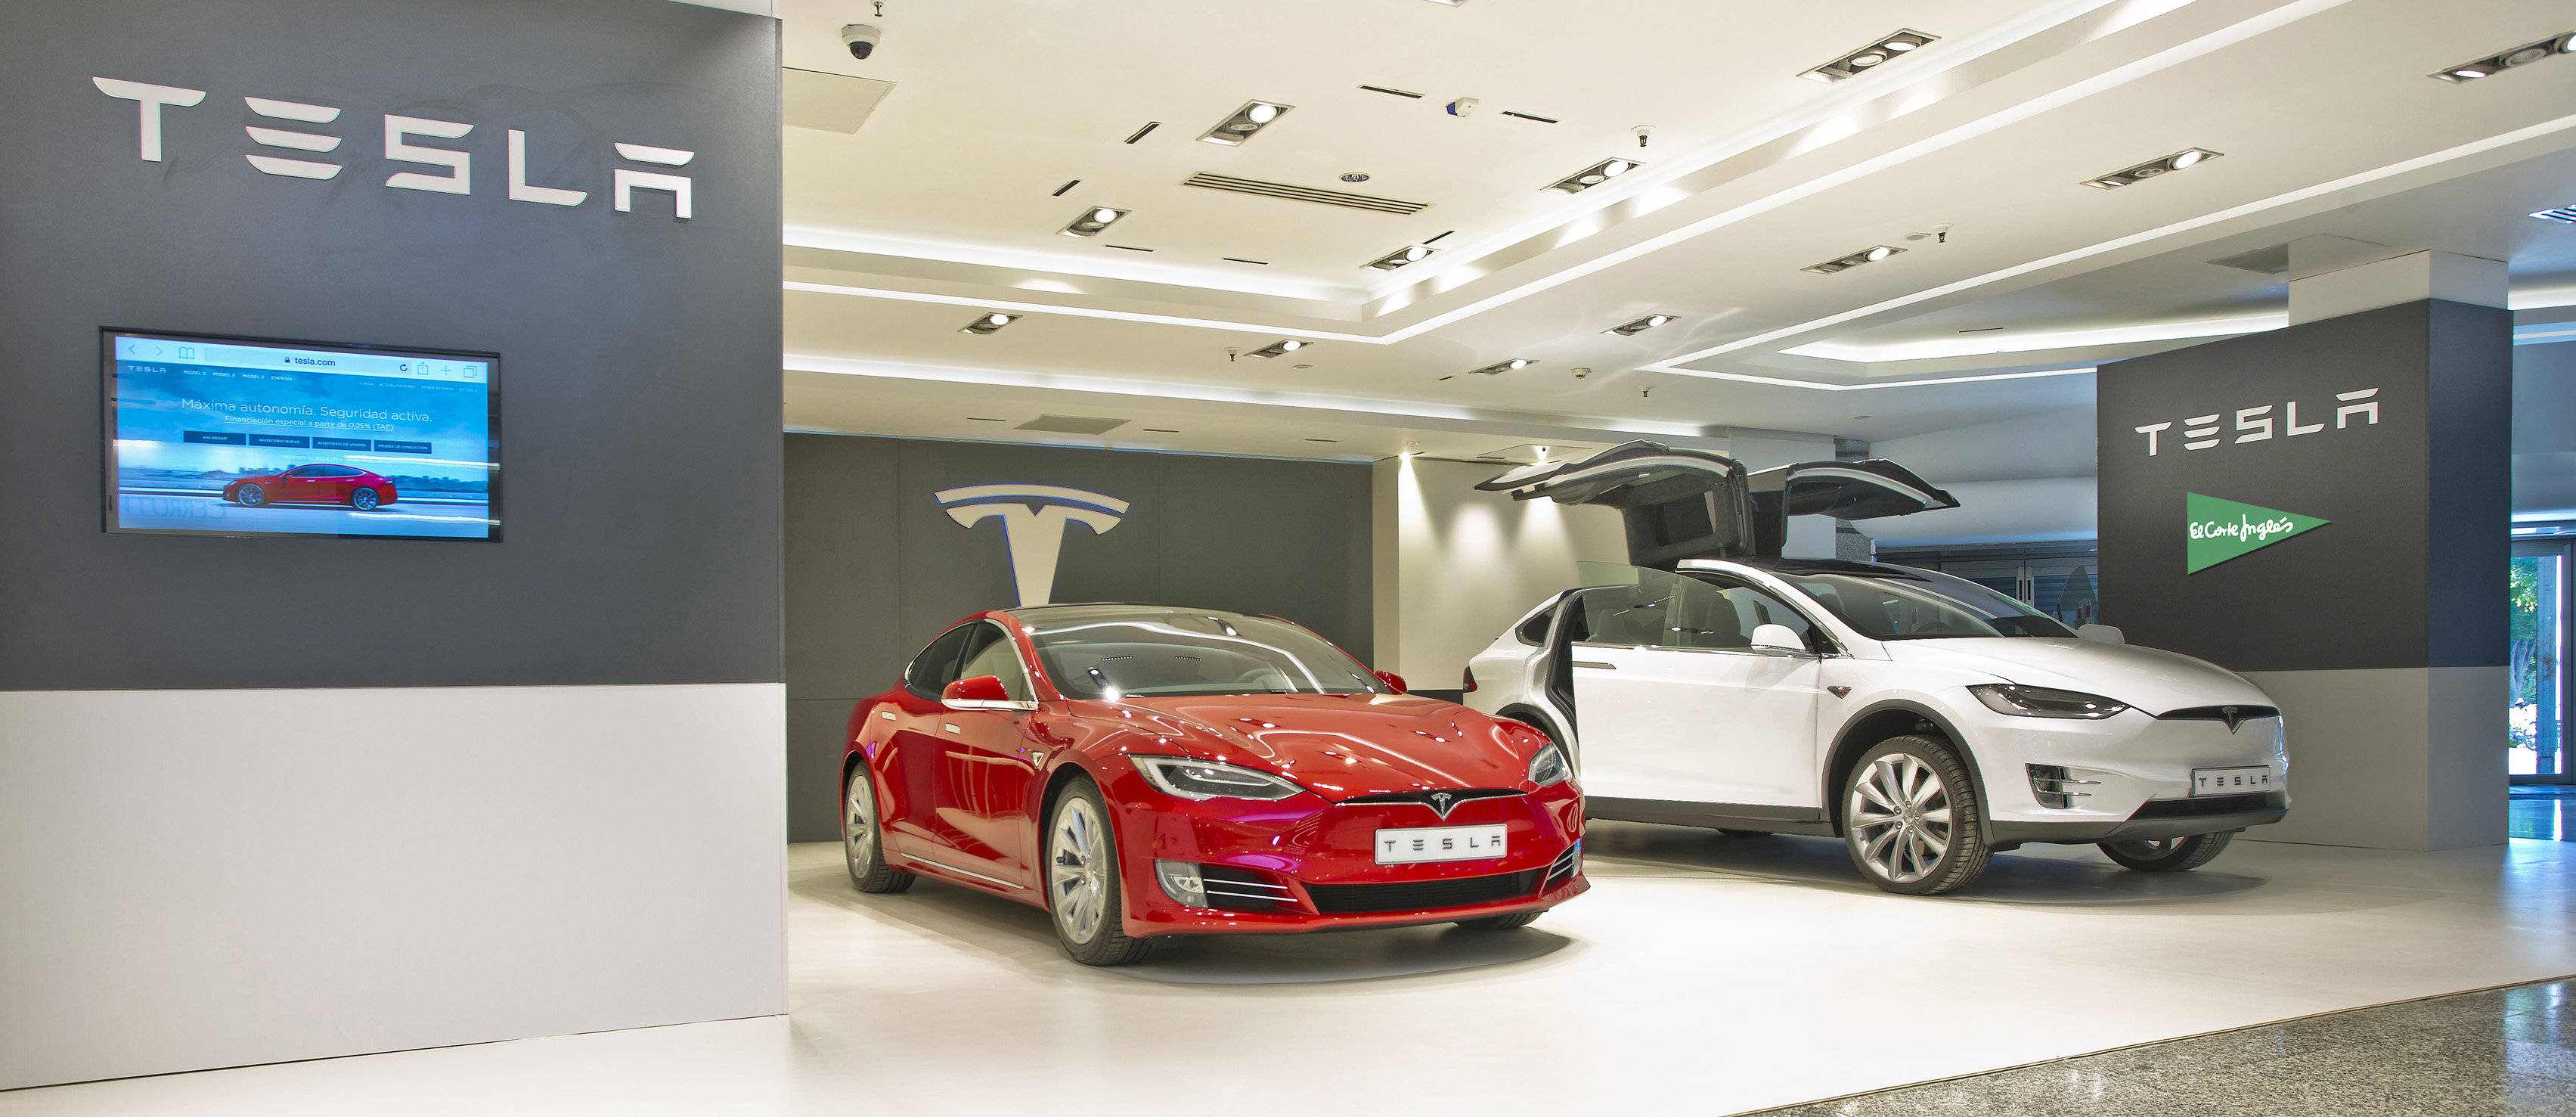 Tesla, El Corte Ingles, Car Showroom, Marbella, Shopping, Photography, Gary Edwards